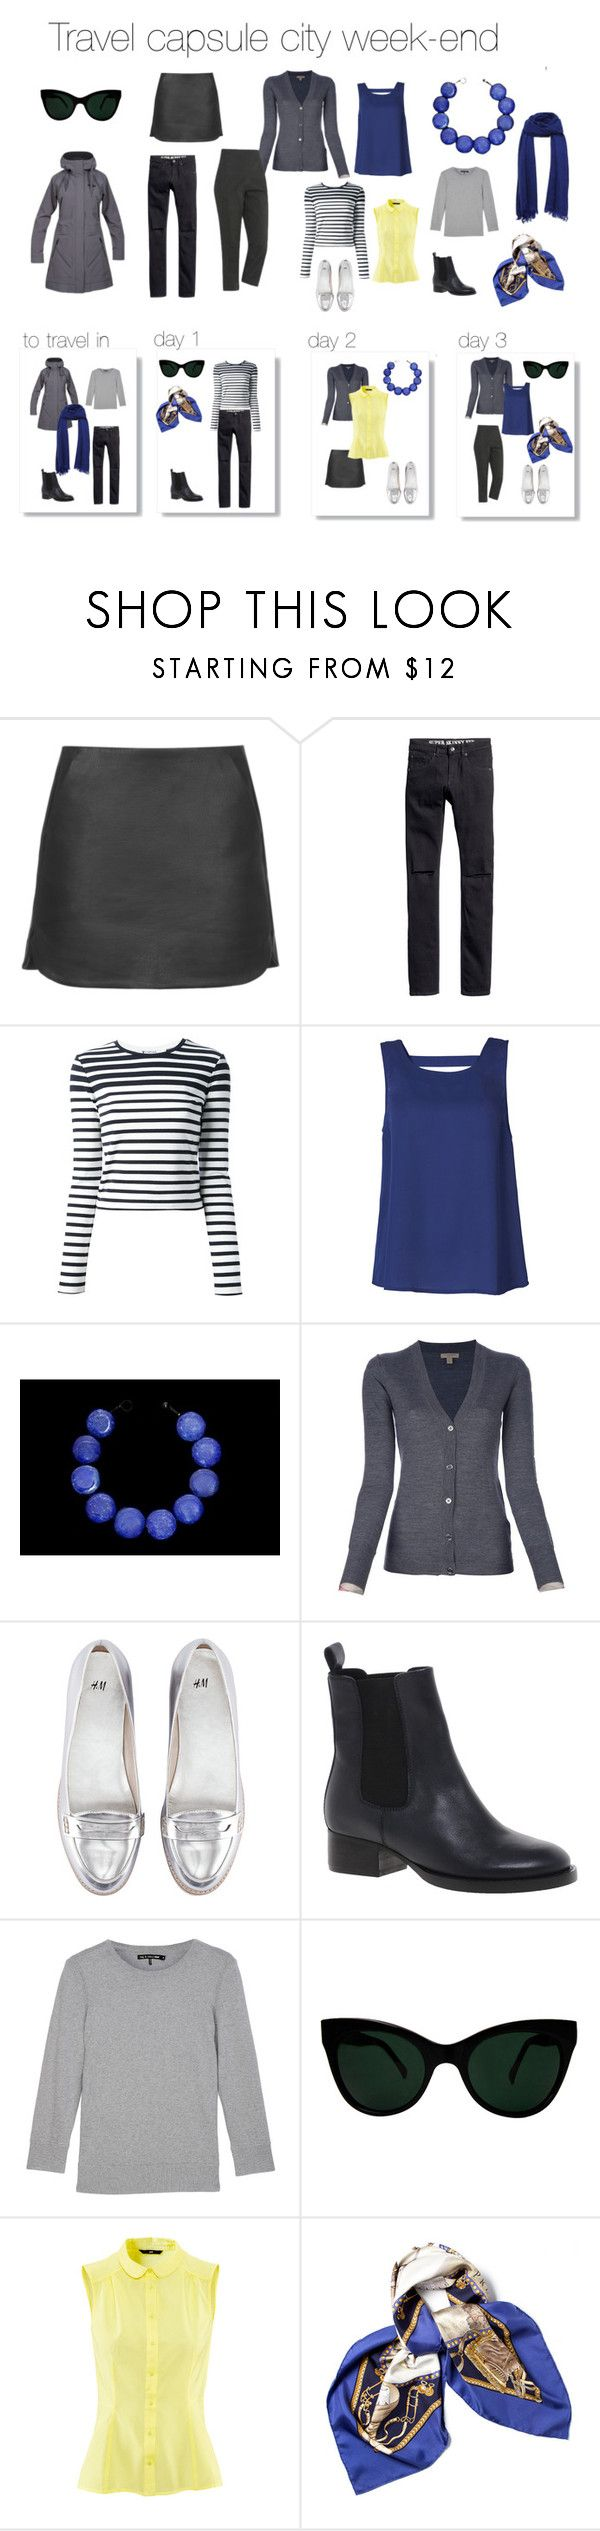 """""""Travel capsule city week-end"""" by fargeporten ❤ liked on Polyvore featuring Topshop, H&M, T By Alexander Wang, ONLY, Burberry, ASOS, rag & bone, KamaliKulture and Hermès"""